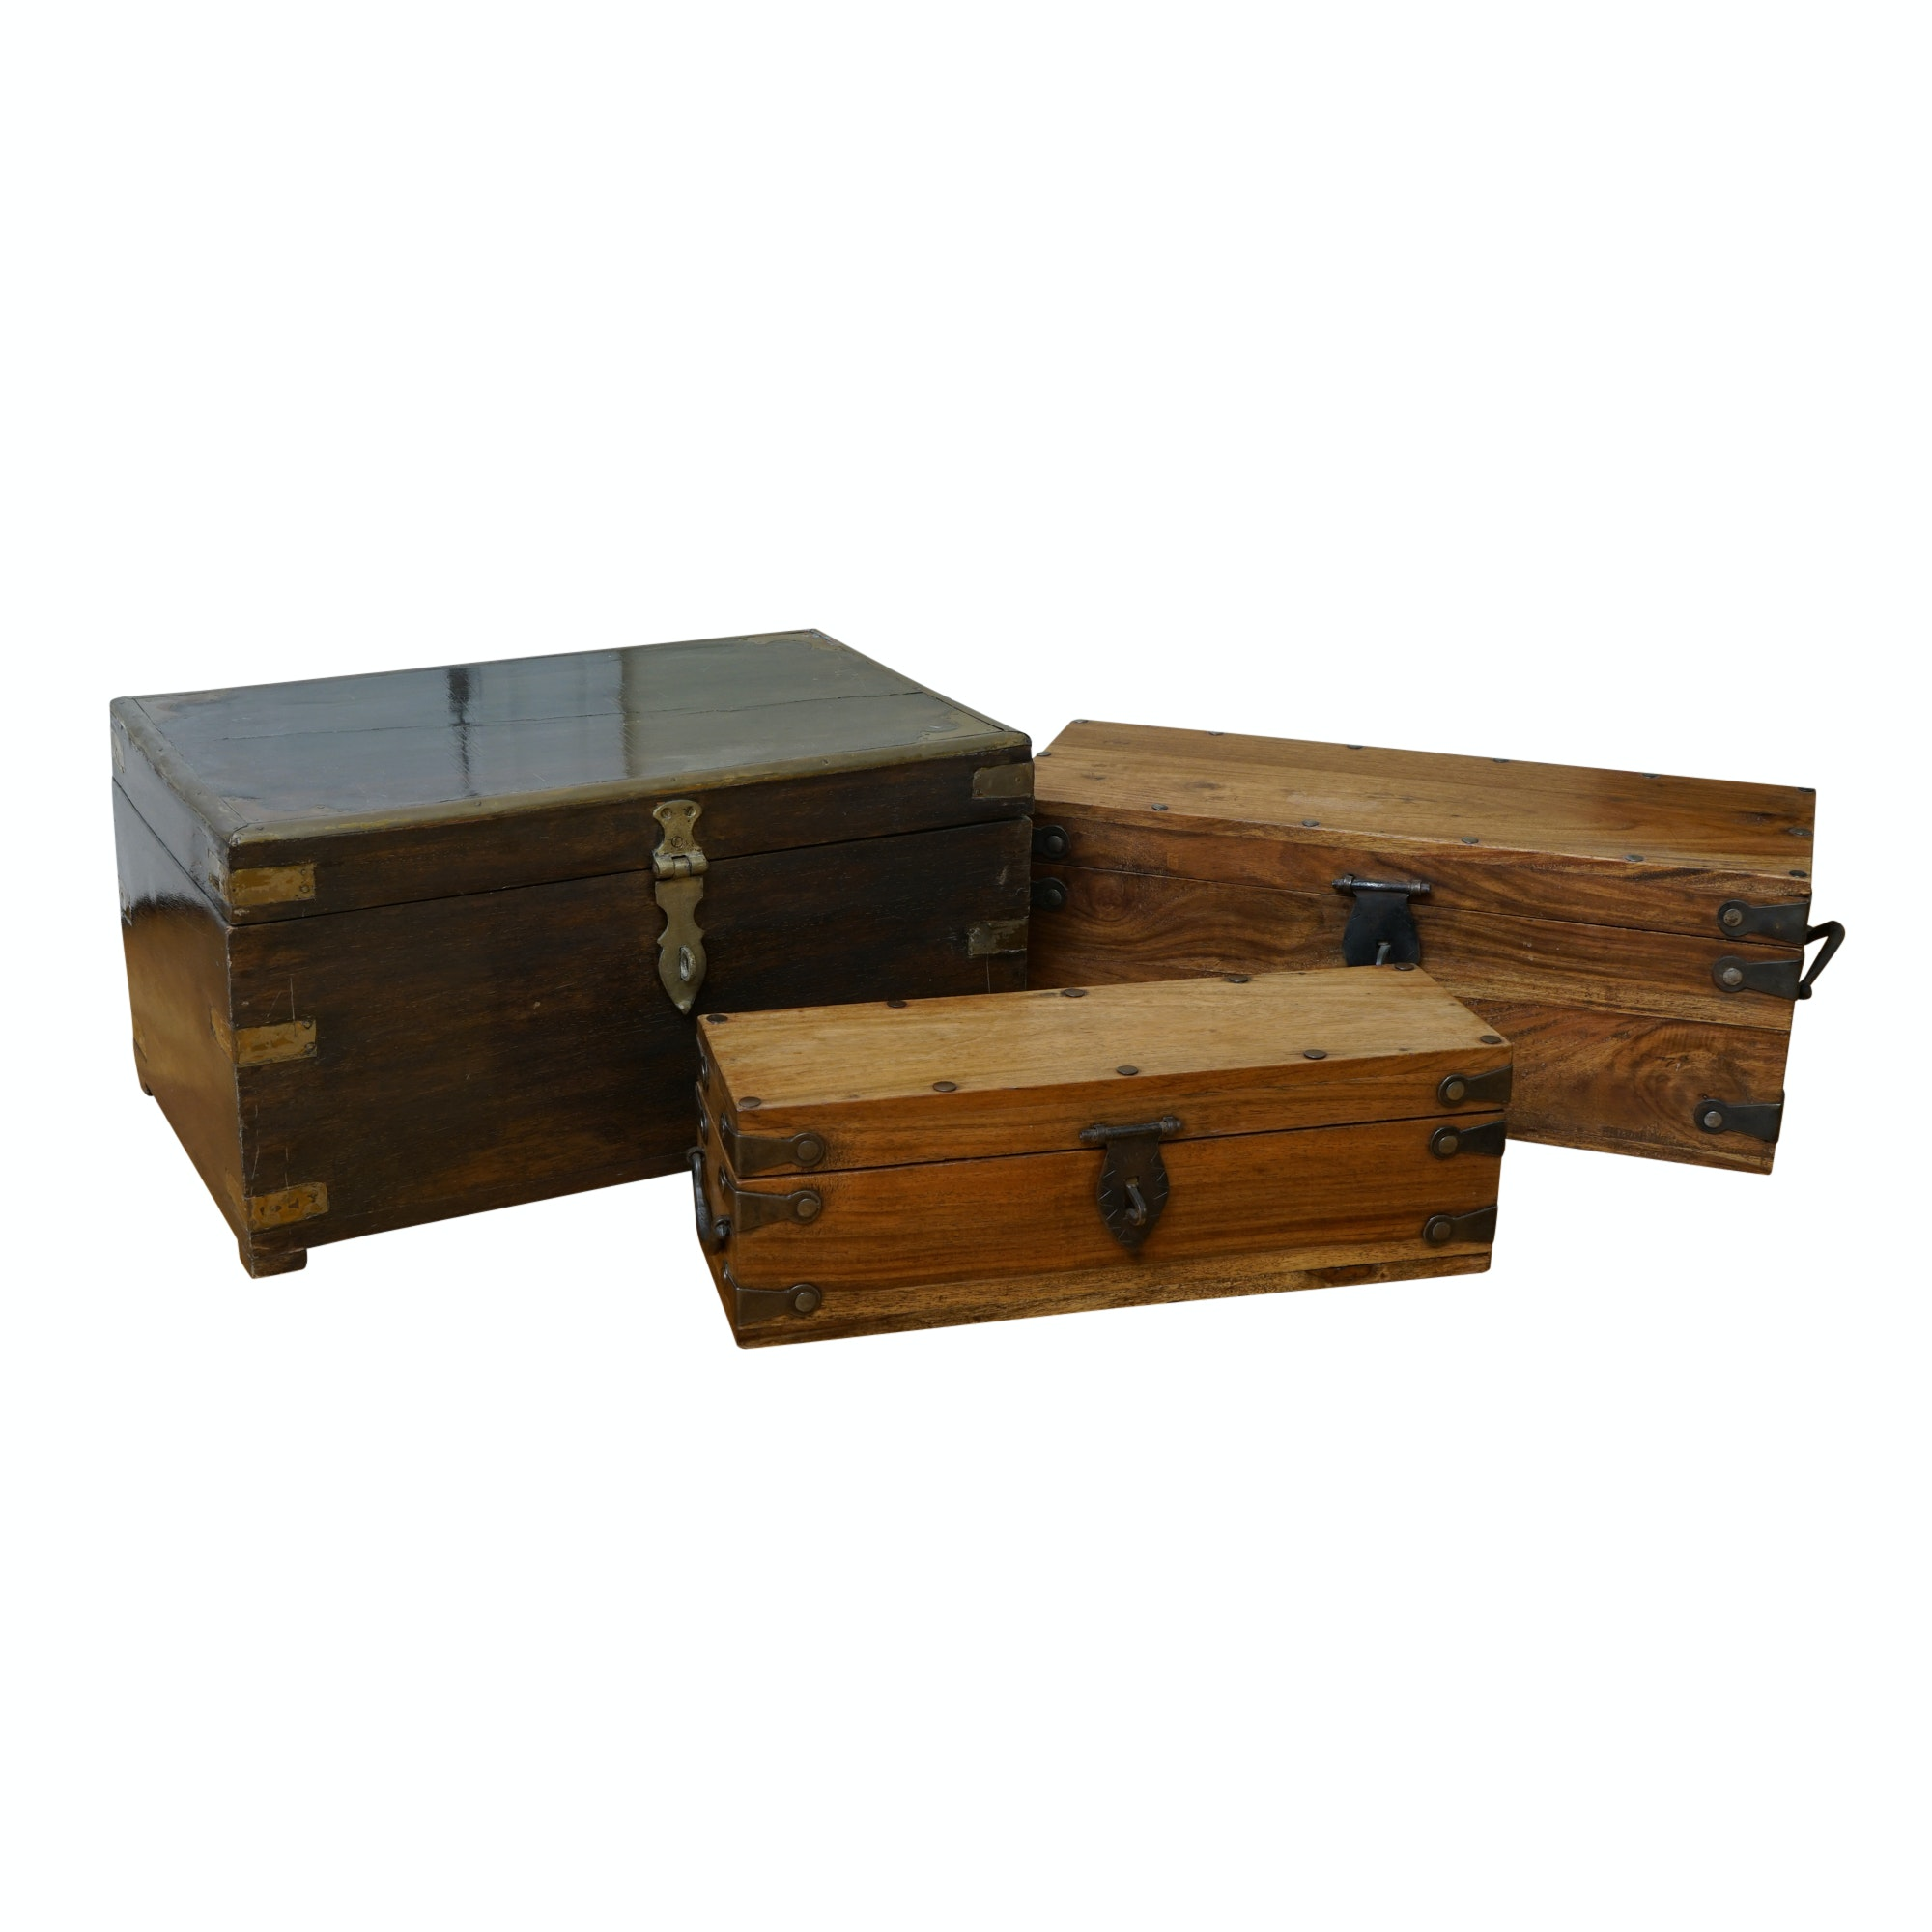 Wooden Boxes with Metal Clasps